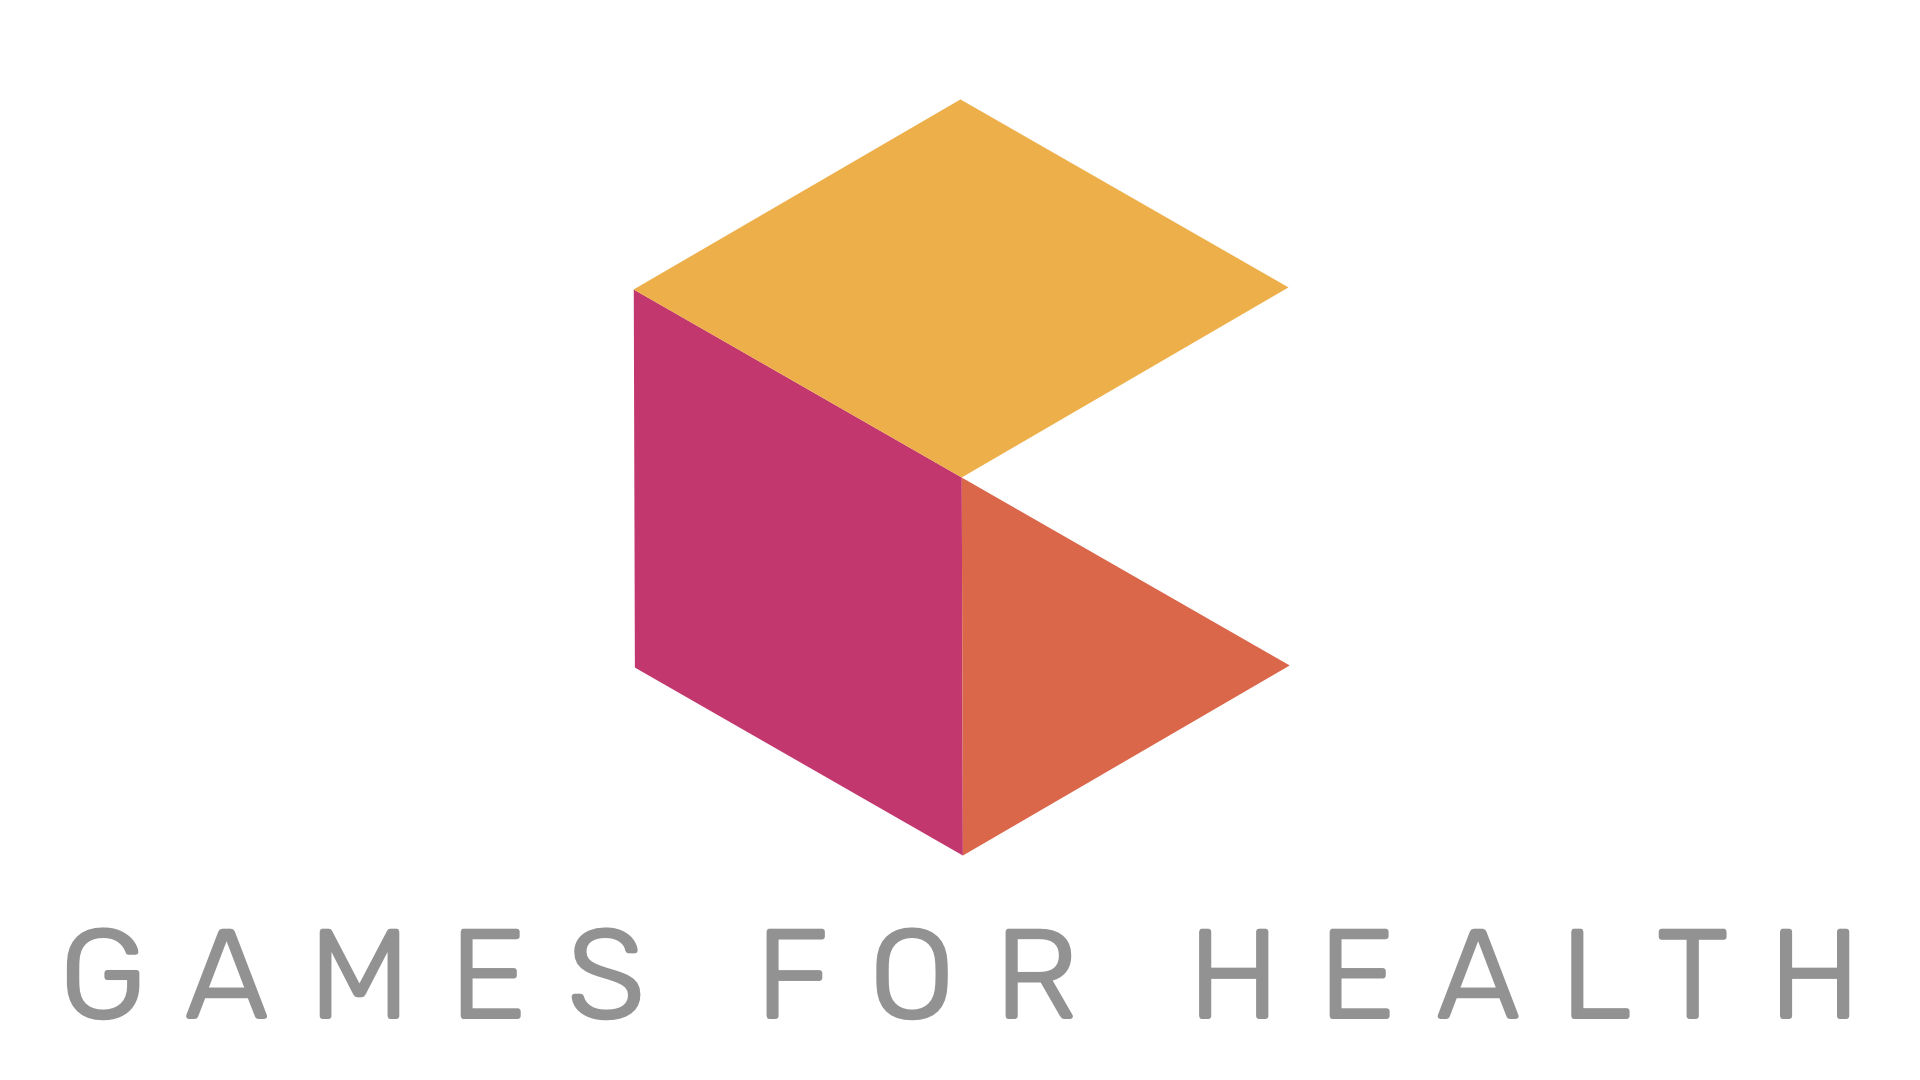 10th Games for Health 2021